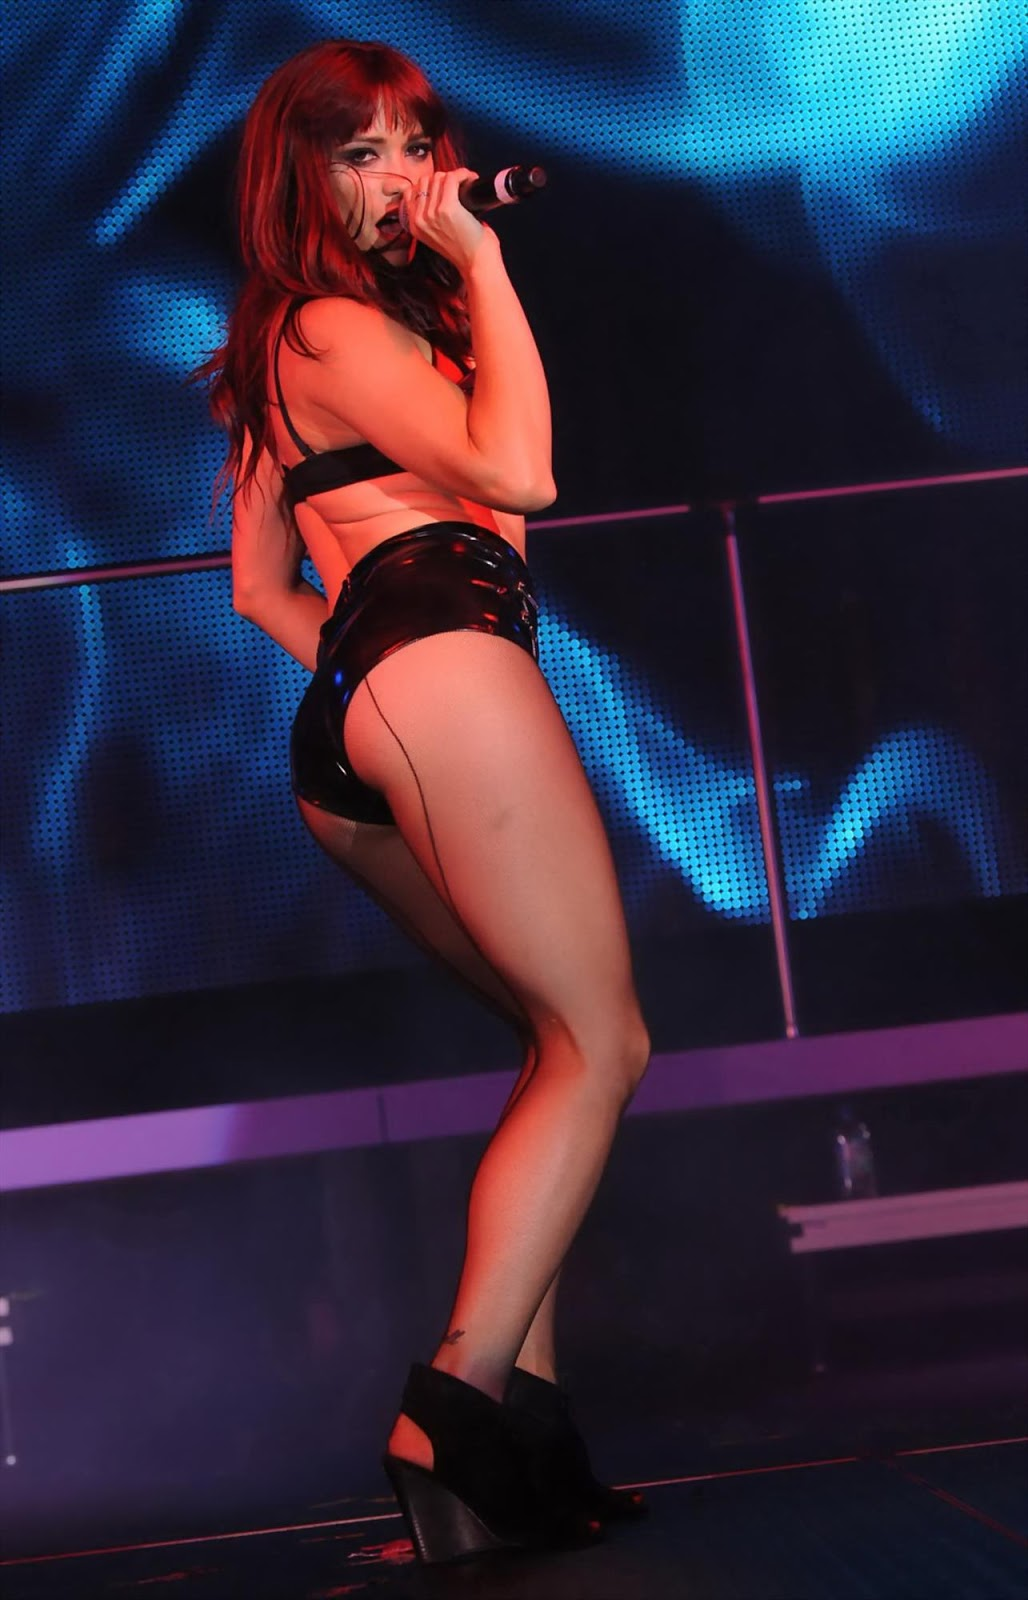 """Jessica Sutta (Pussycat Dolls) Performing Photos at """"The Knockouts Burlesque Show"""""""